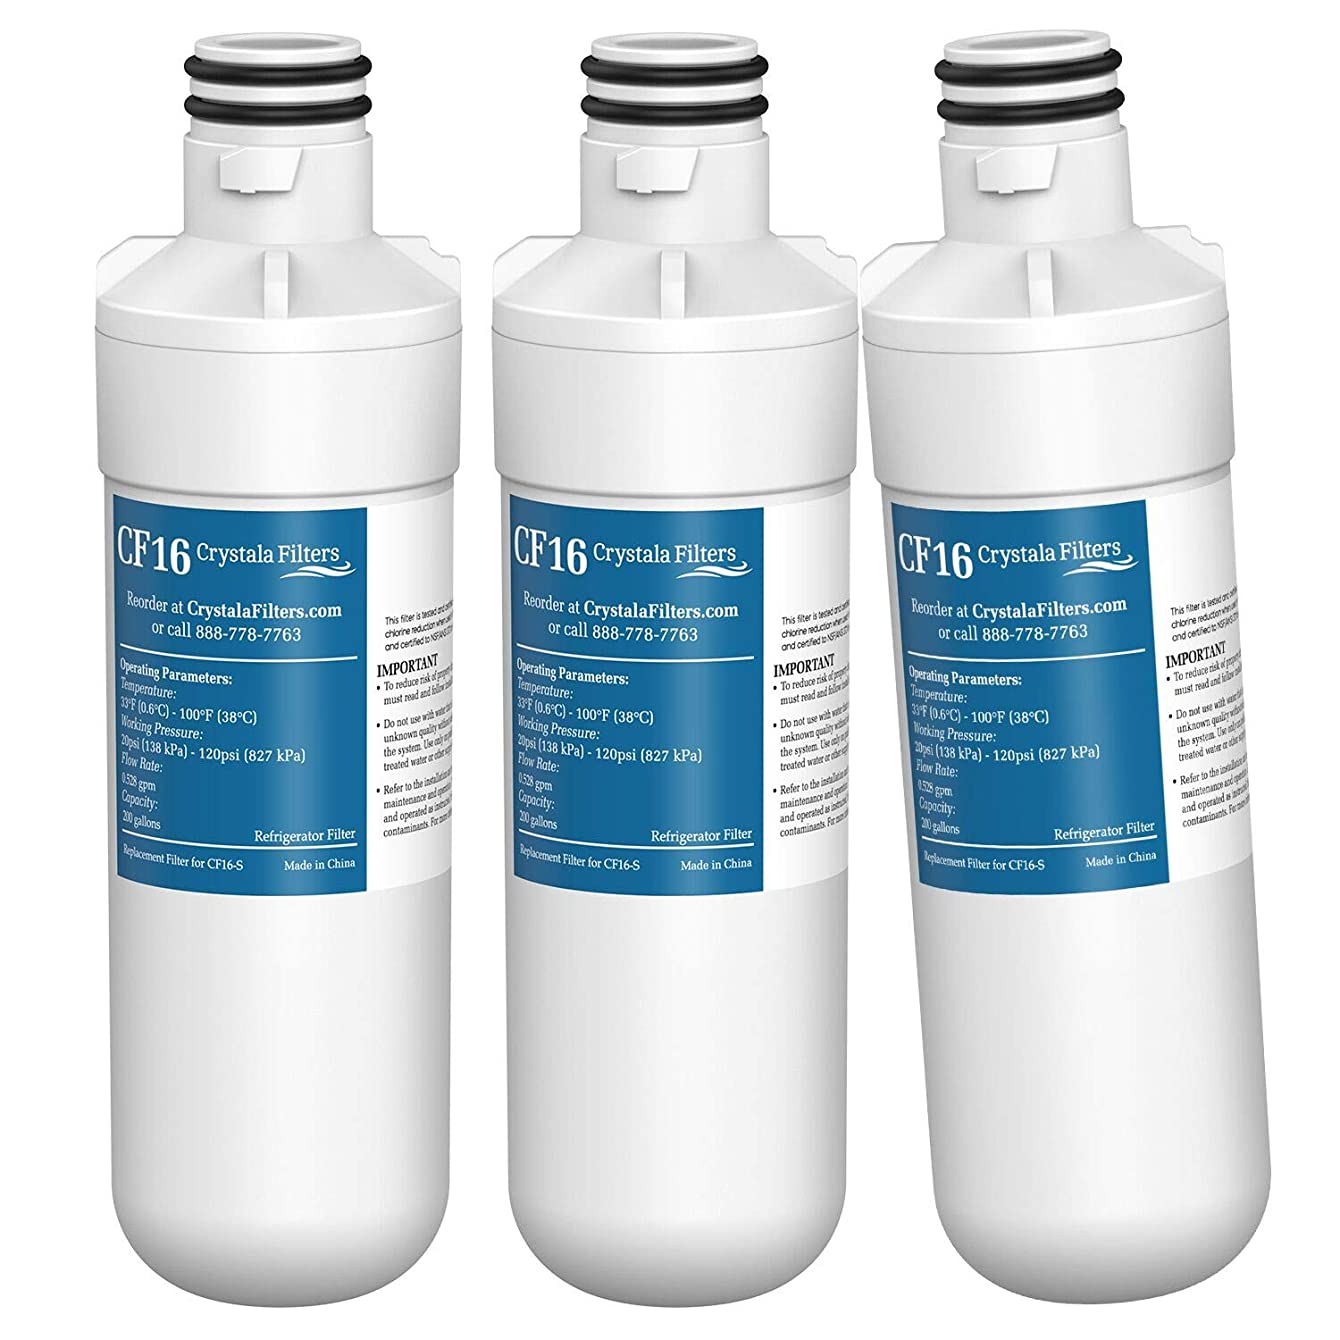 LT1000P Refrigerator Water Filter, Compatible with LG LT1000P, LT1000P, LT1000PC, MDJ64844601, ADQ74793501, ADQ74793502, Kenmore 46-9980, 9980, by Crystala Filters, 3 PACK